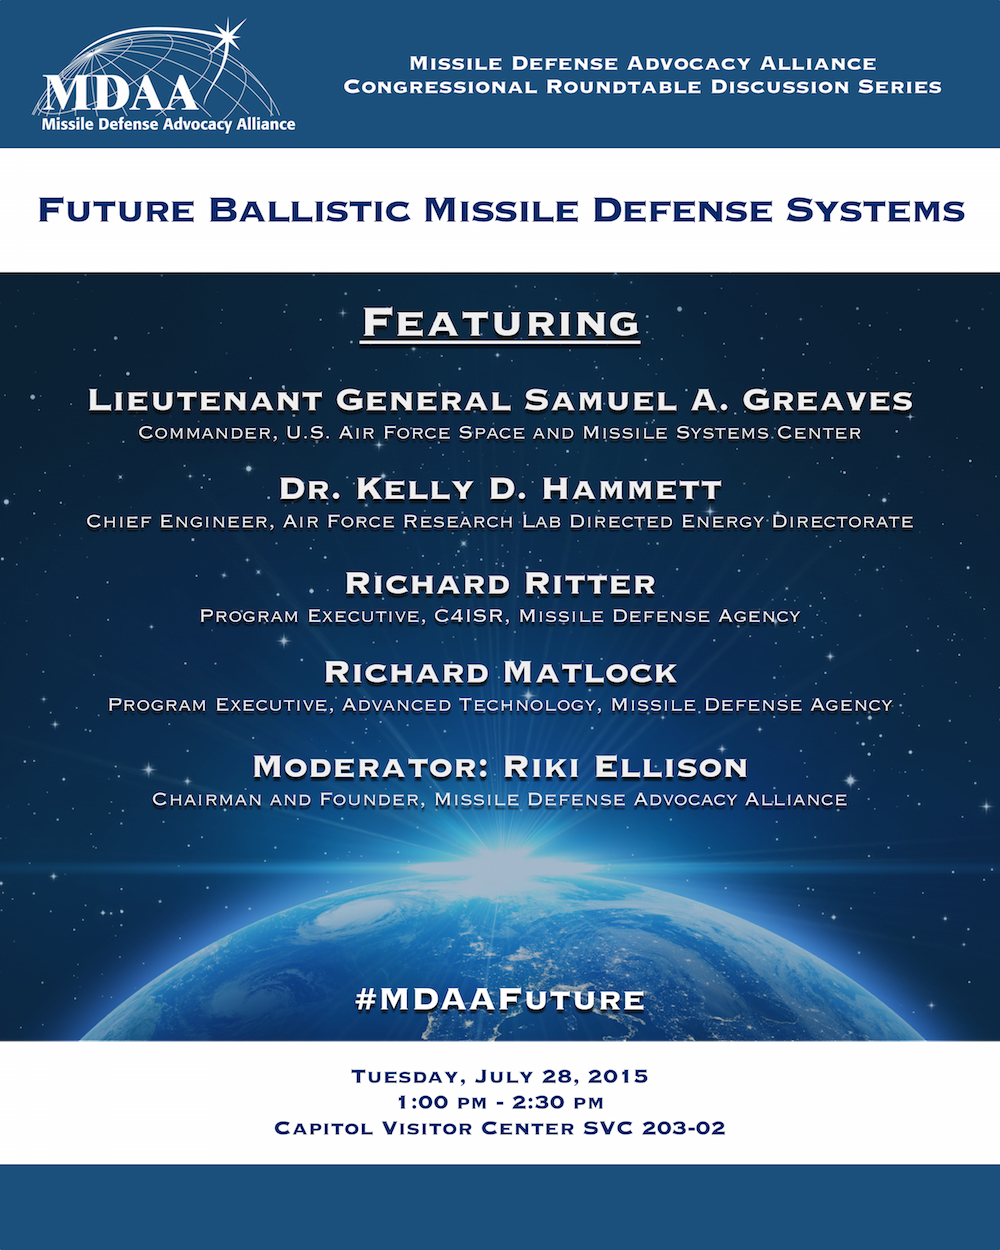 mdaa  Missile Defense Advocacy Alliance » MDAA Congressional Roundtable ...